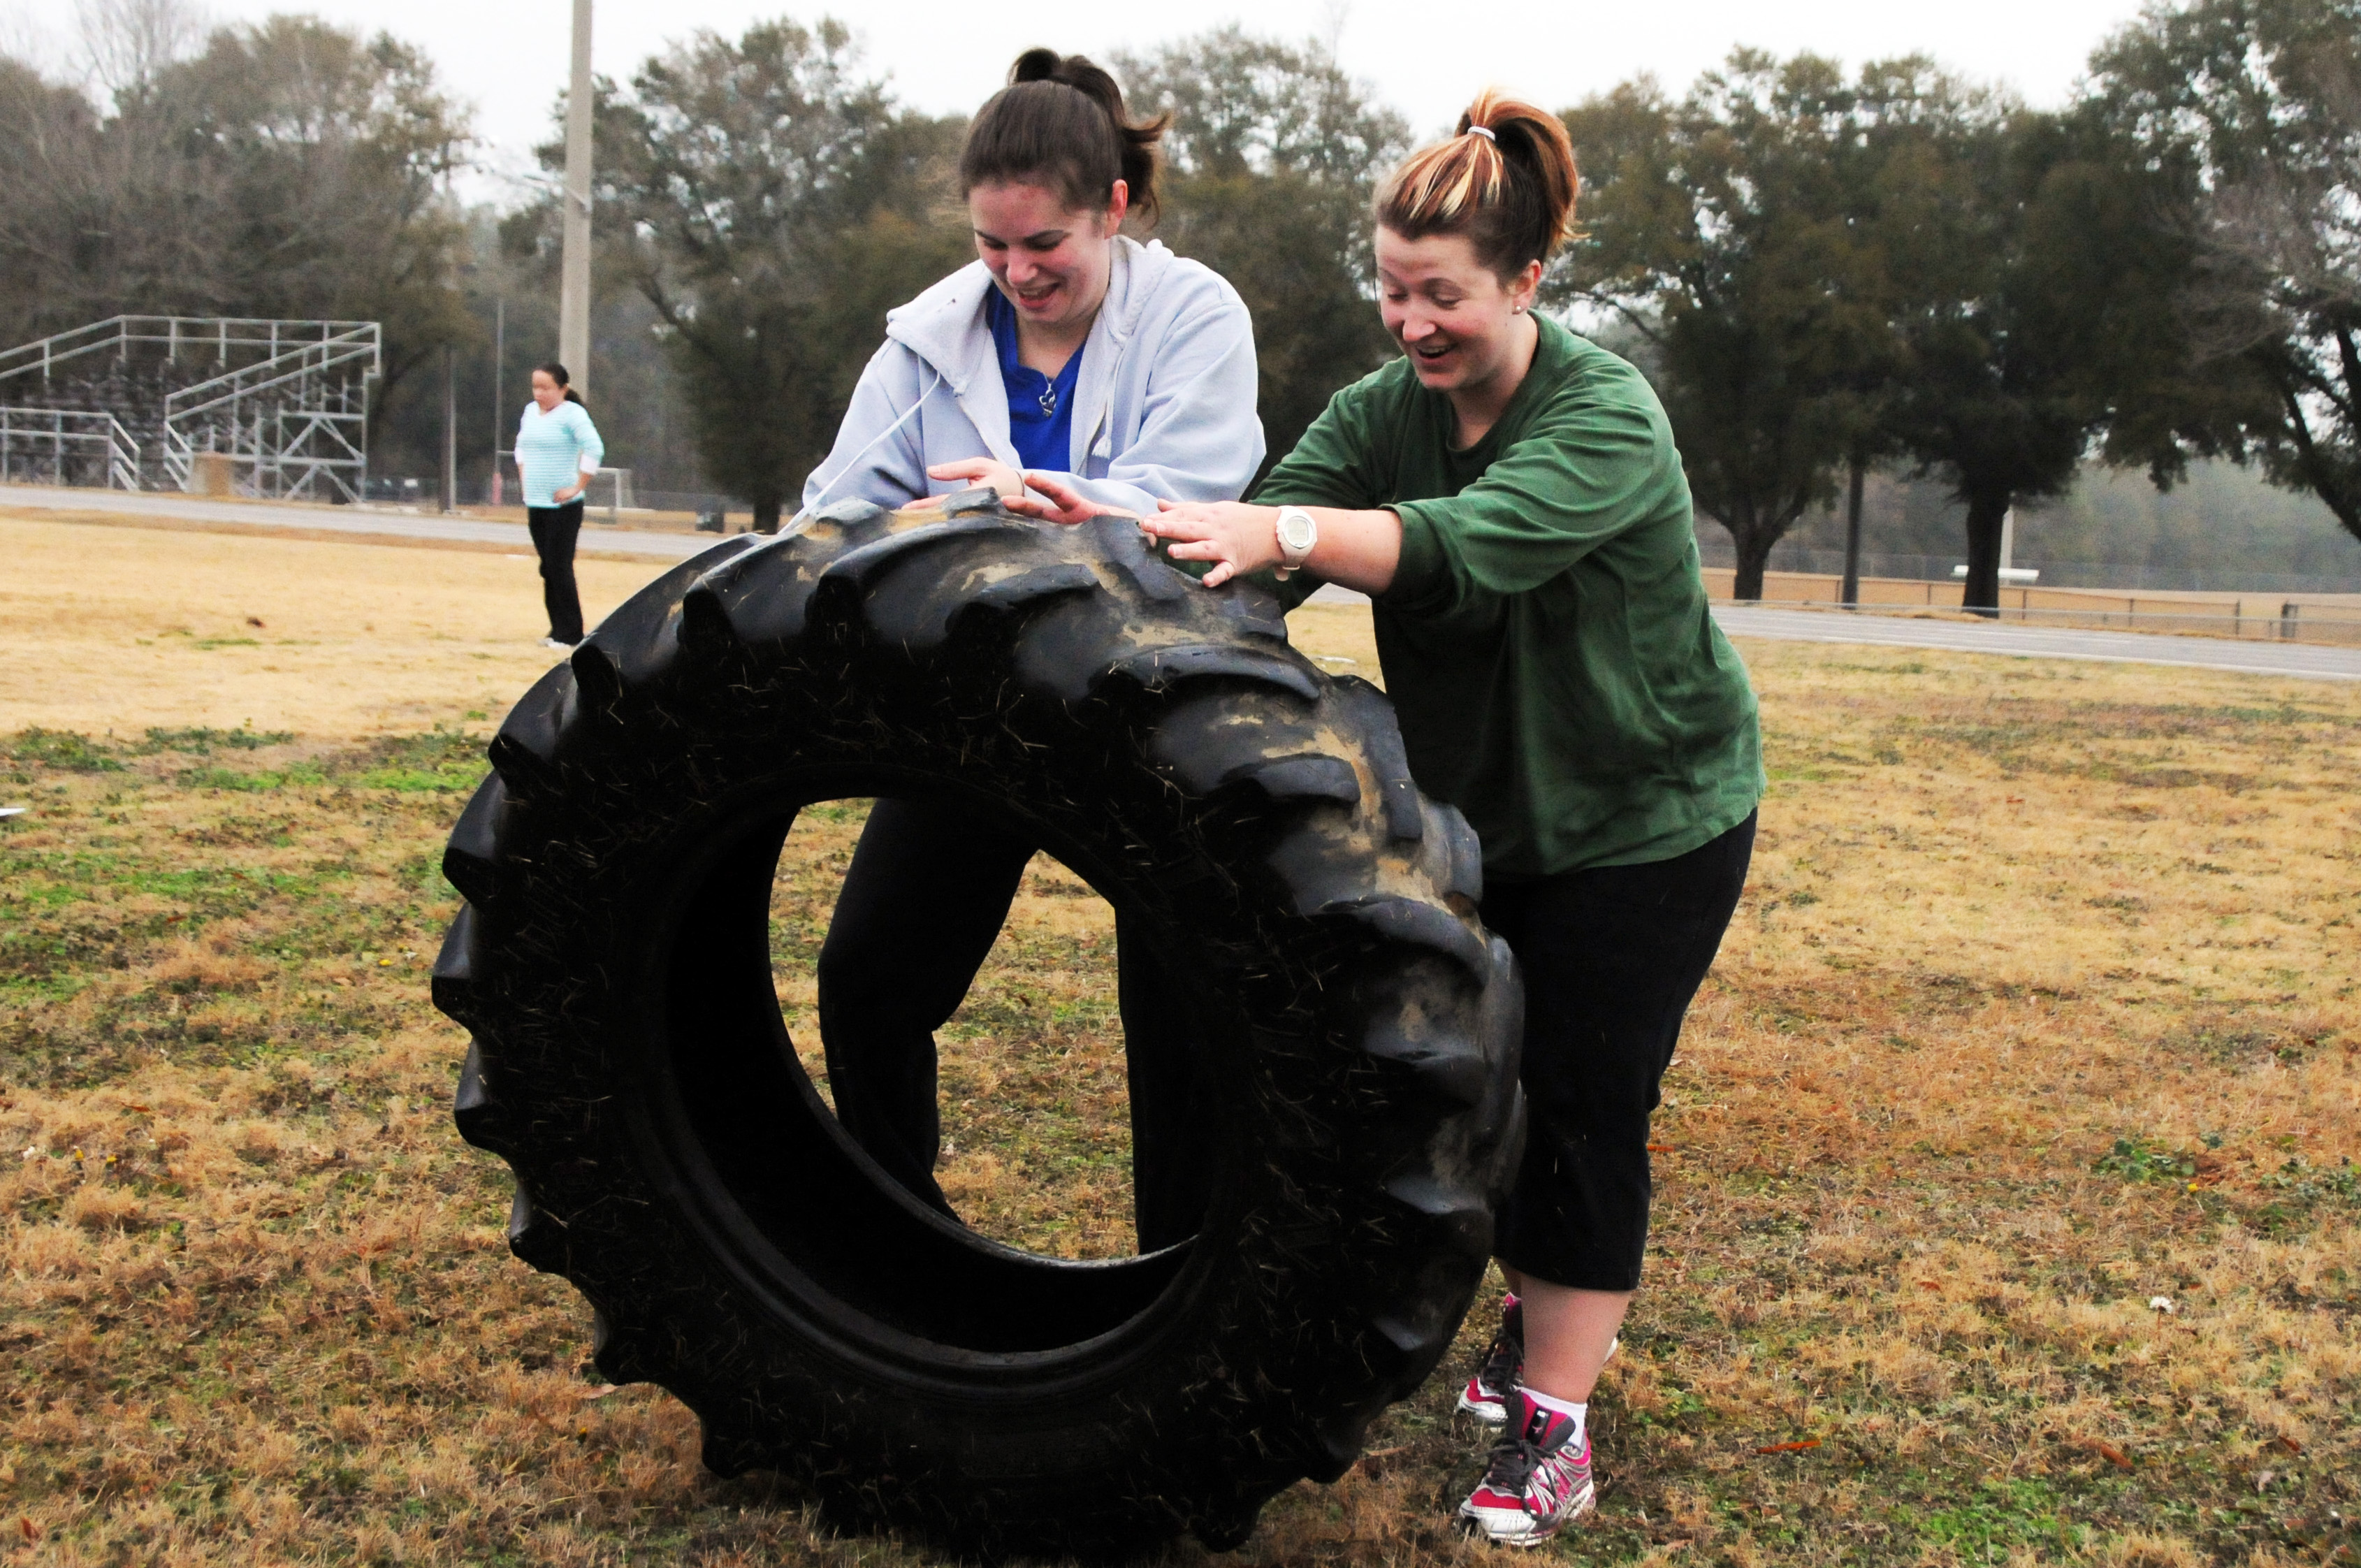 Two young women moving a big tire during a fitness boot camp.